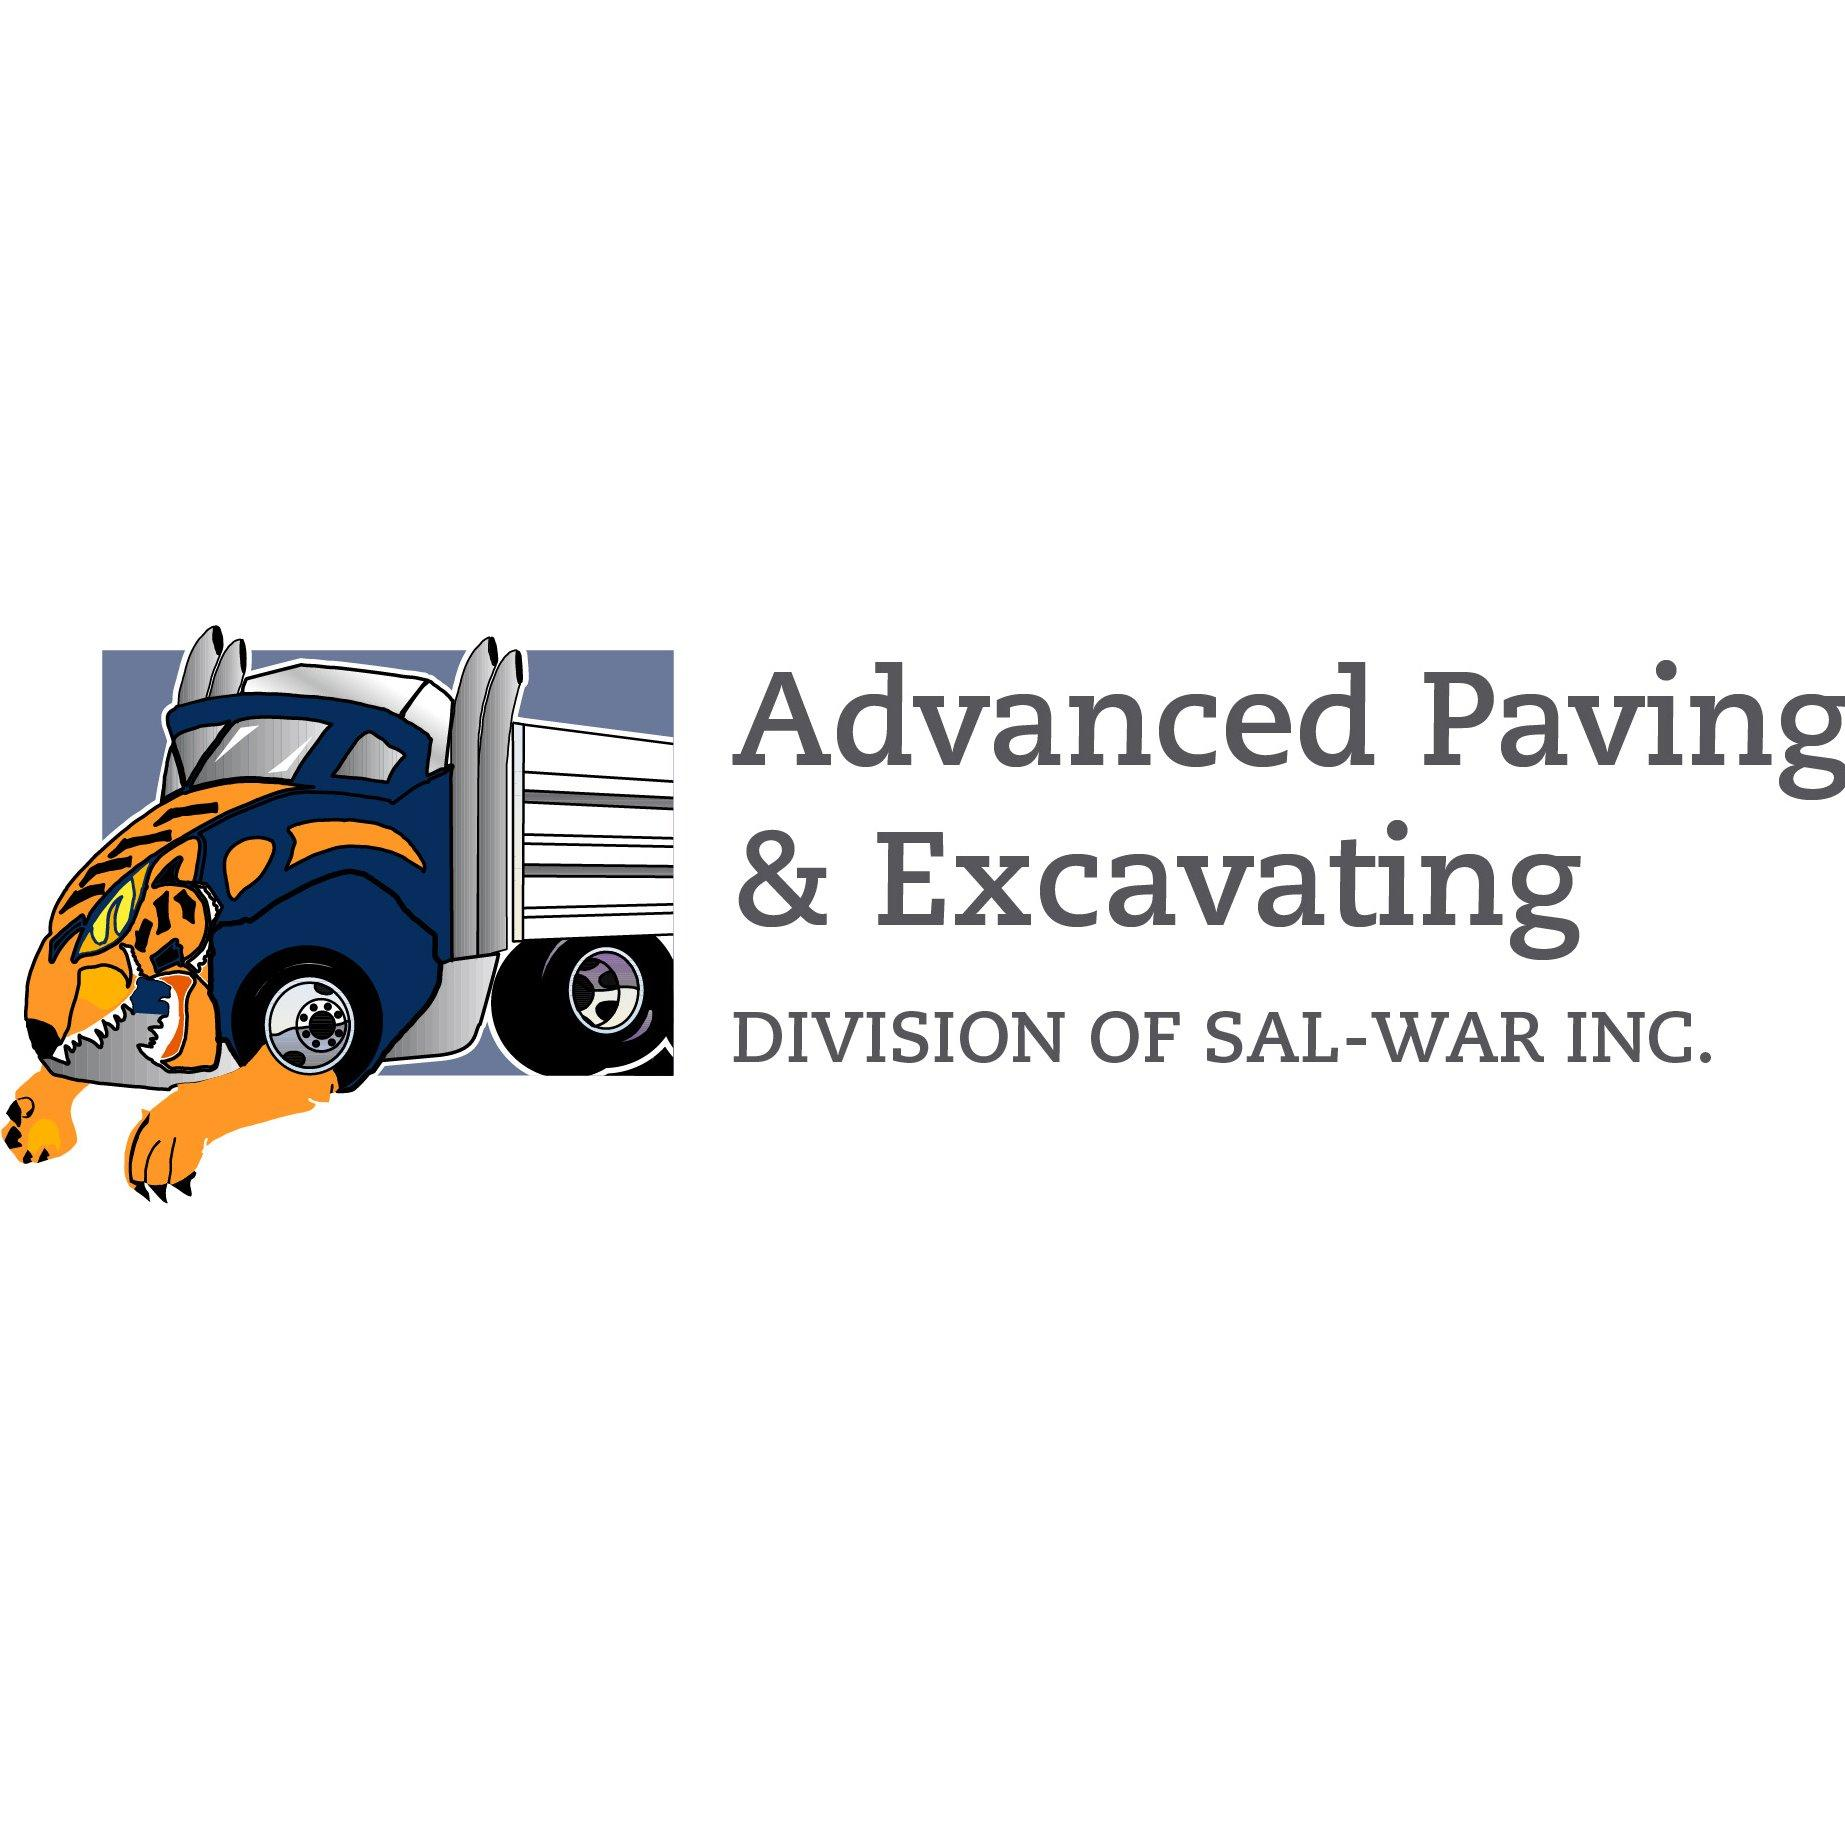 Advanced Paving & Excavating - Woodbridge, CT - Concrete, Brick & Stone